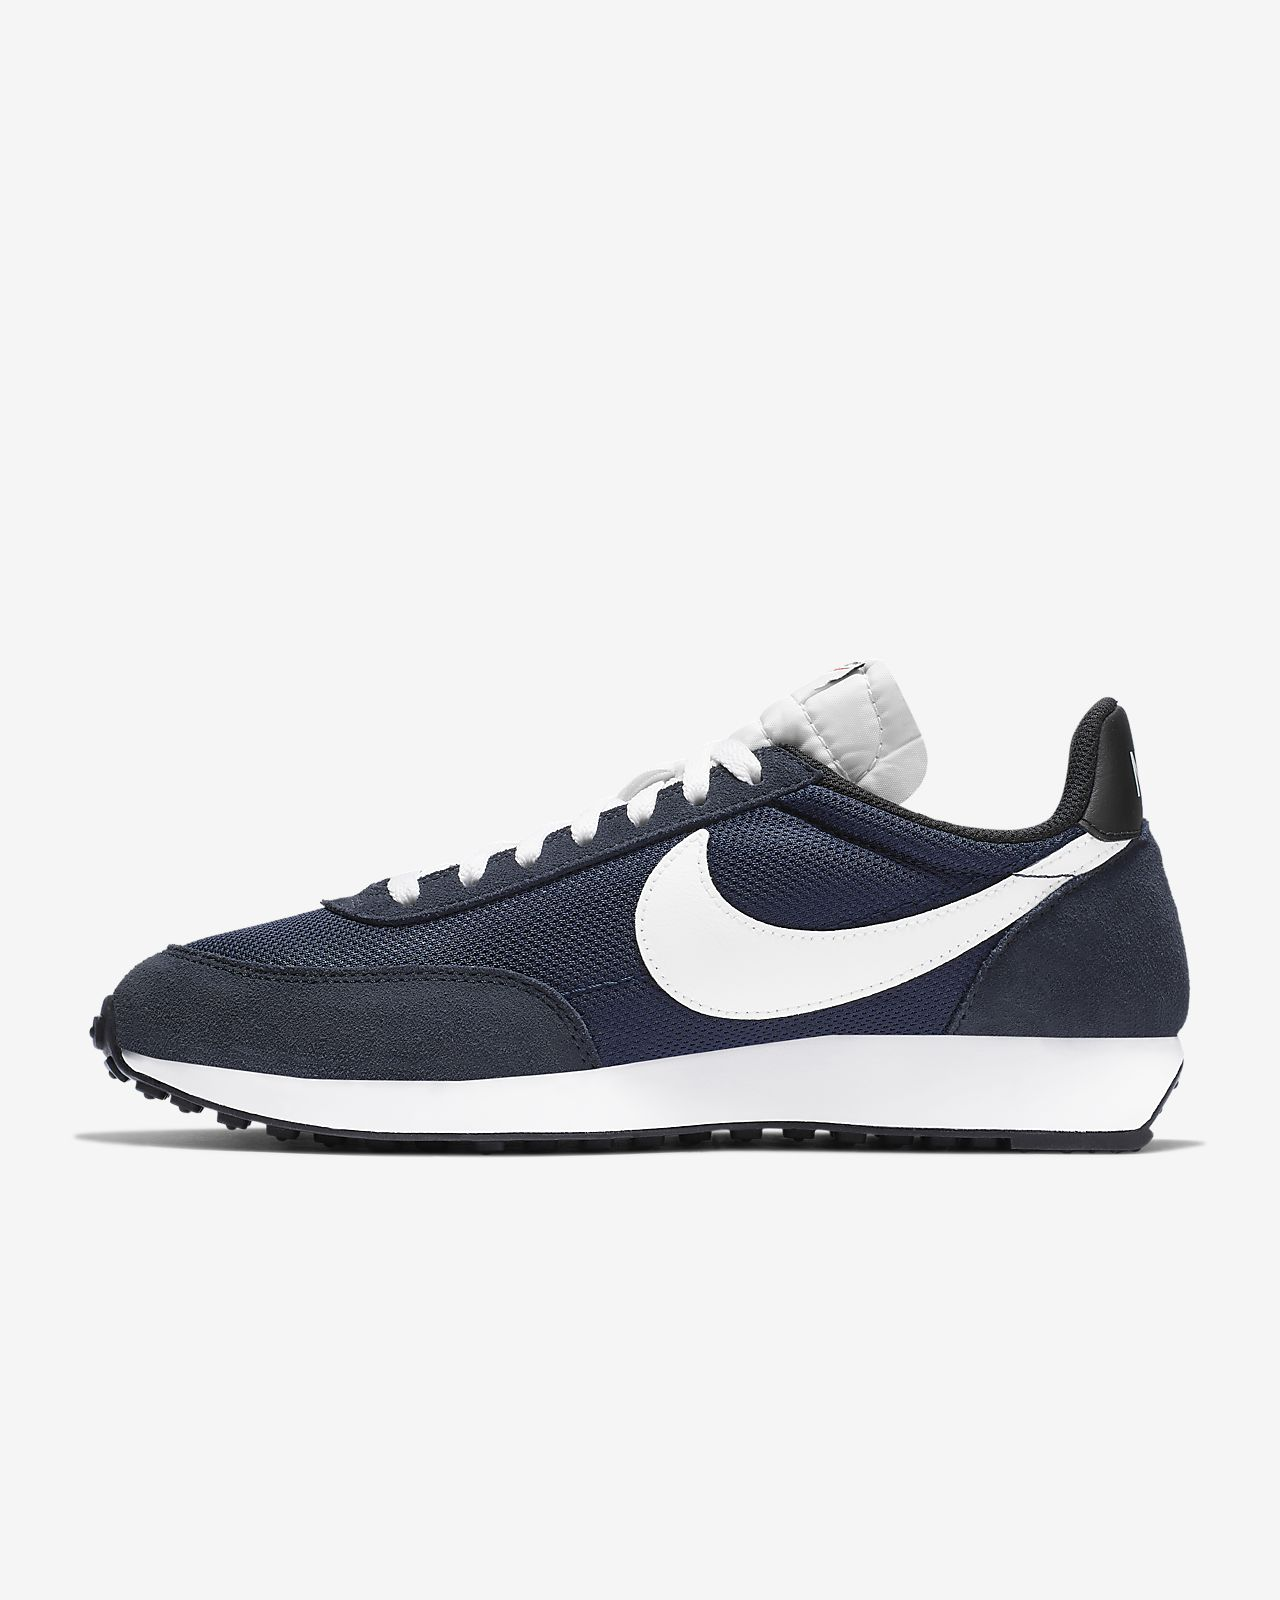 sale retailer 0b905 268b0 Nike Air Tailwind 79 Shoe